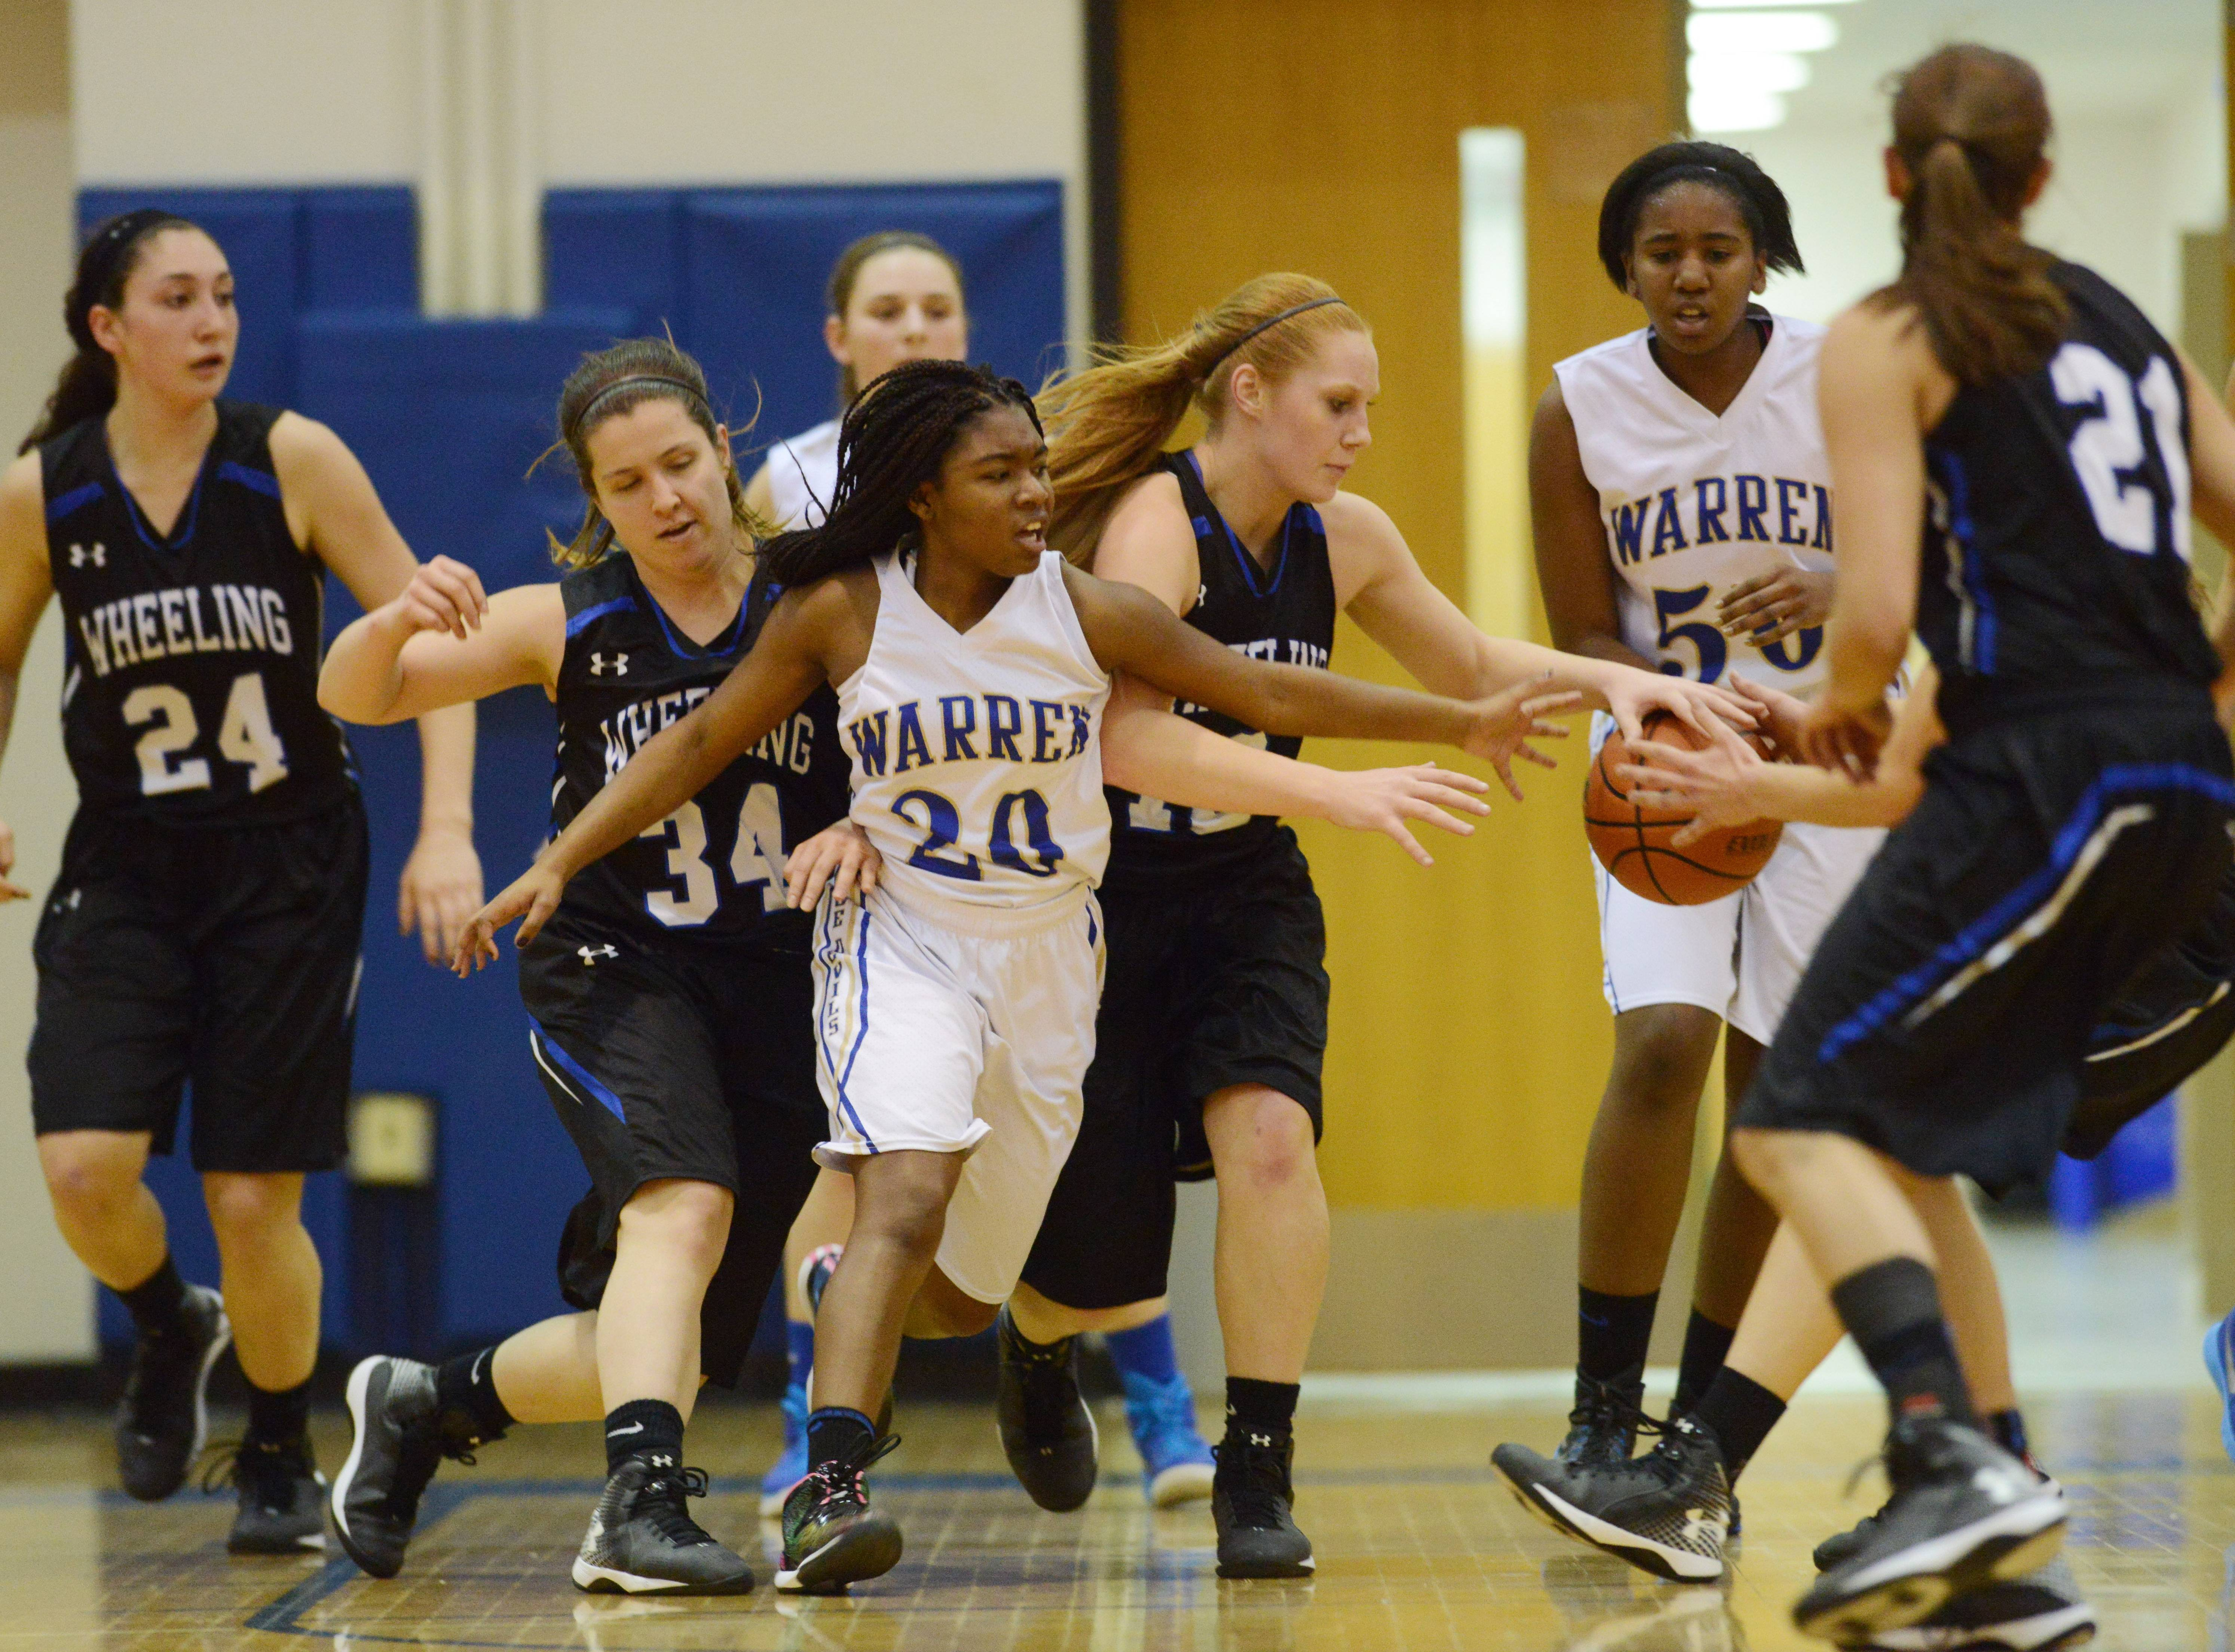 Images from the Wheeling vs. Warren girls basketball game on Saturday, Dec. 27 in Gurnee.